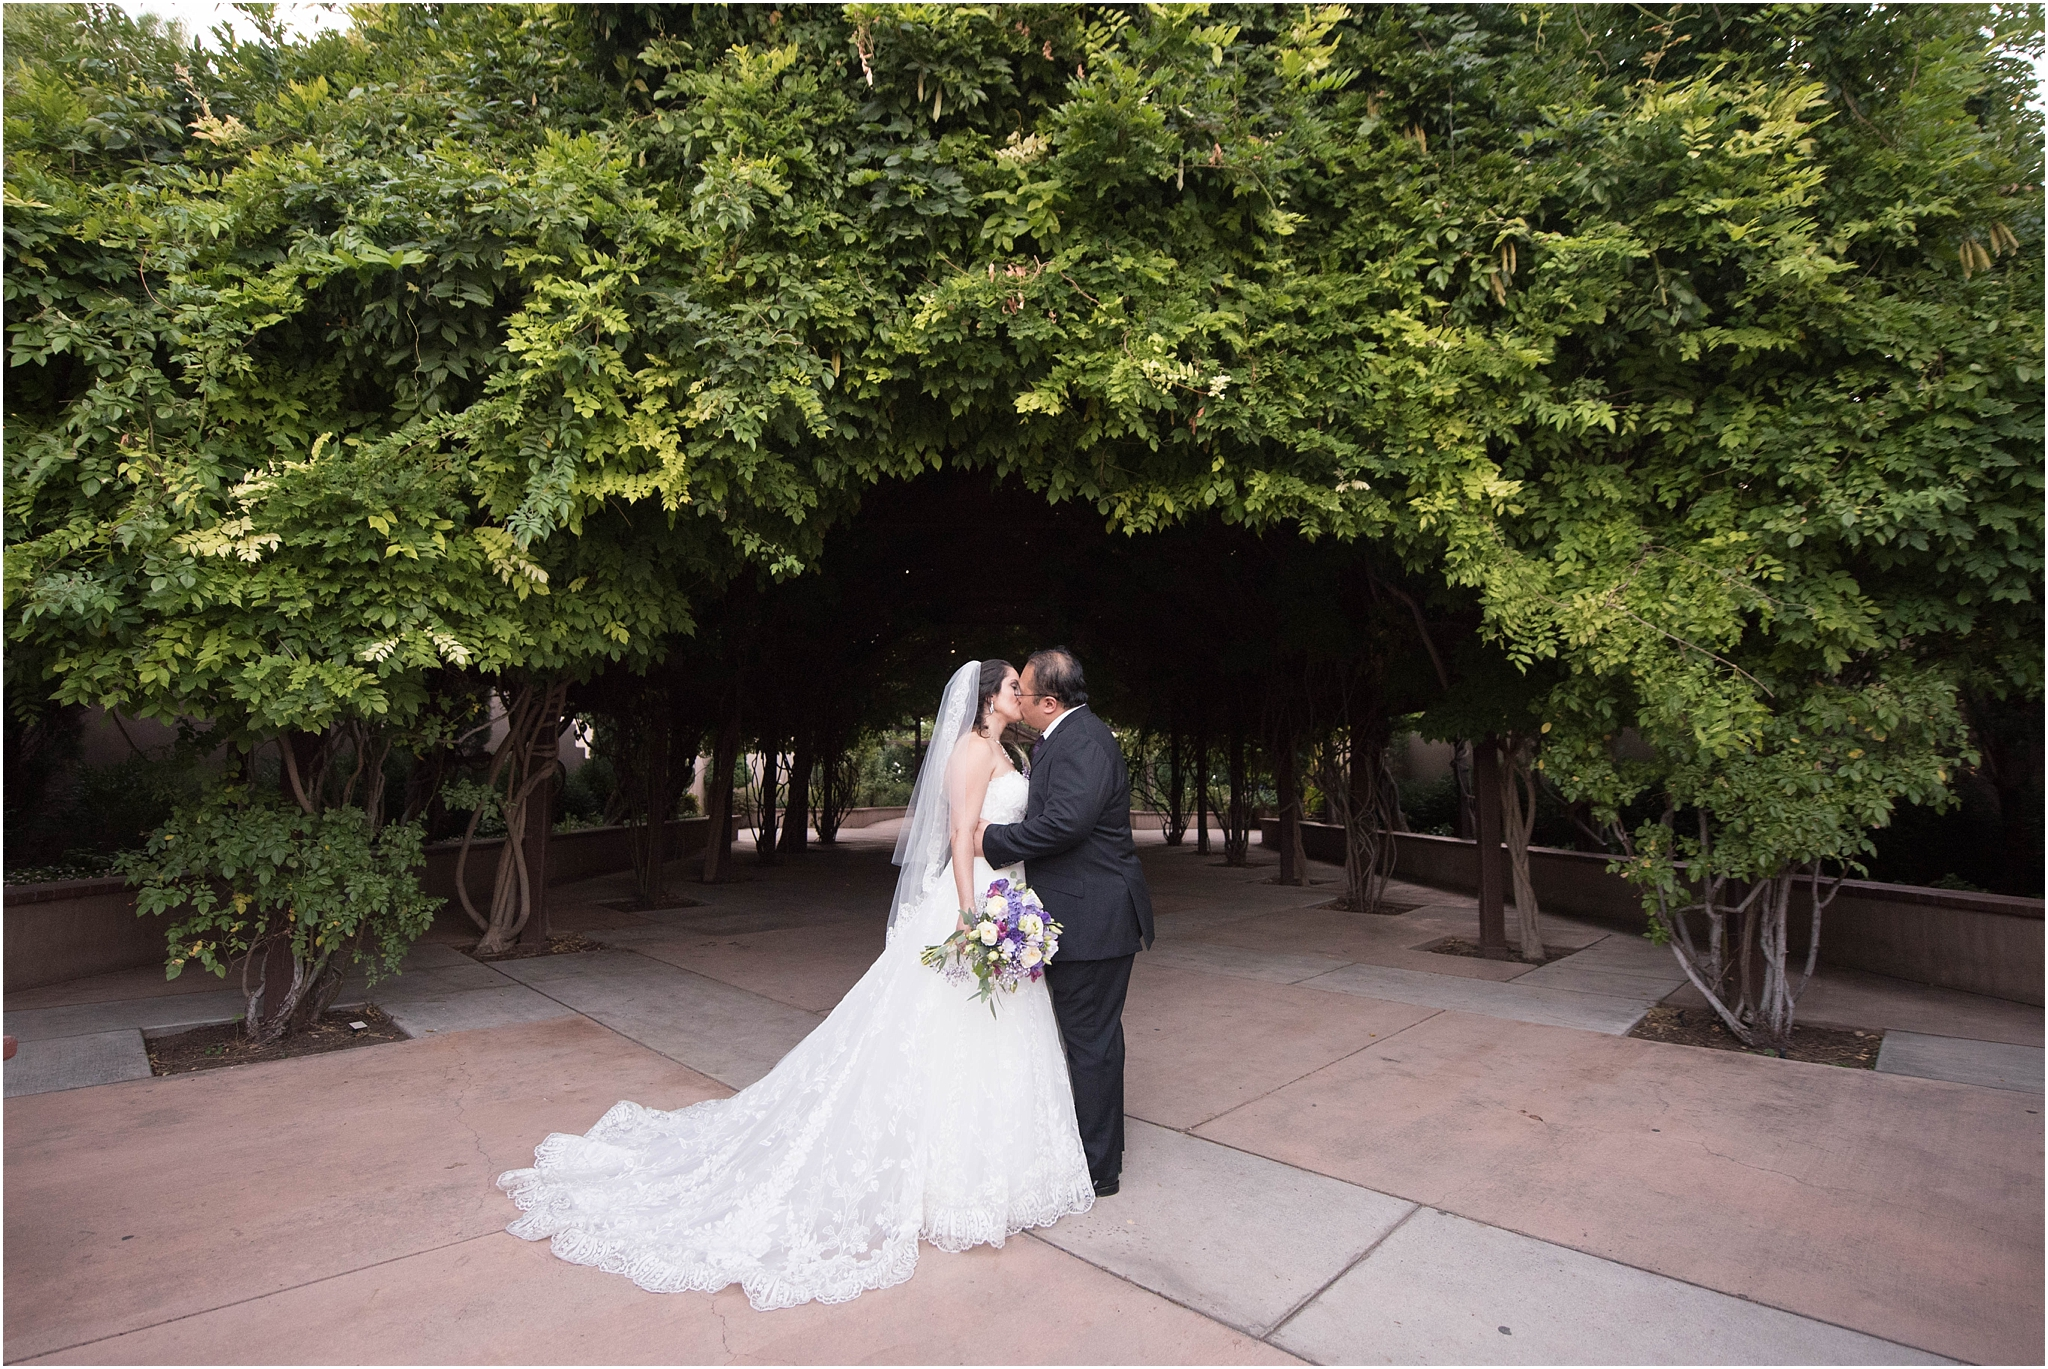 kayla kitts photography - new mexico wedding photographer - albuquerque botanic gardens - hotel albuquerque_0025.jpg